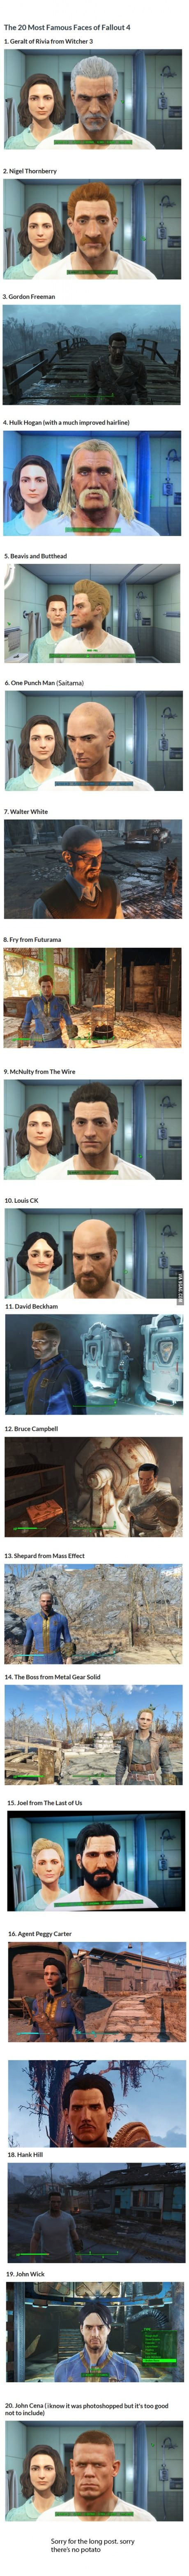 The 20 Most Famous Faces of Fallout 4